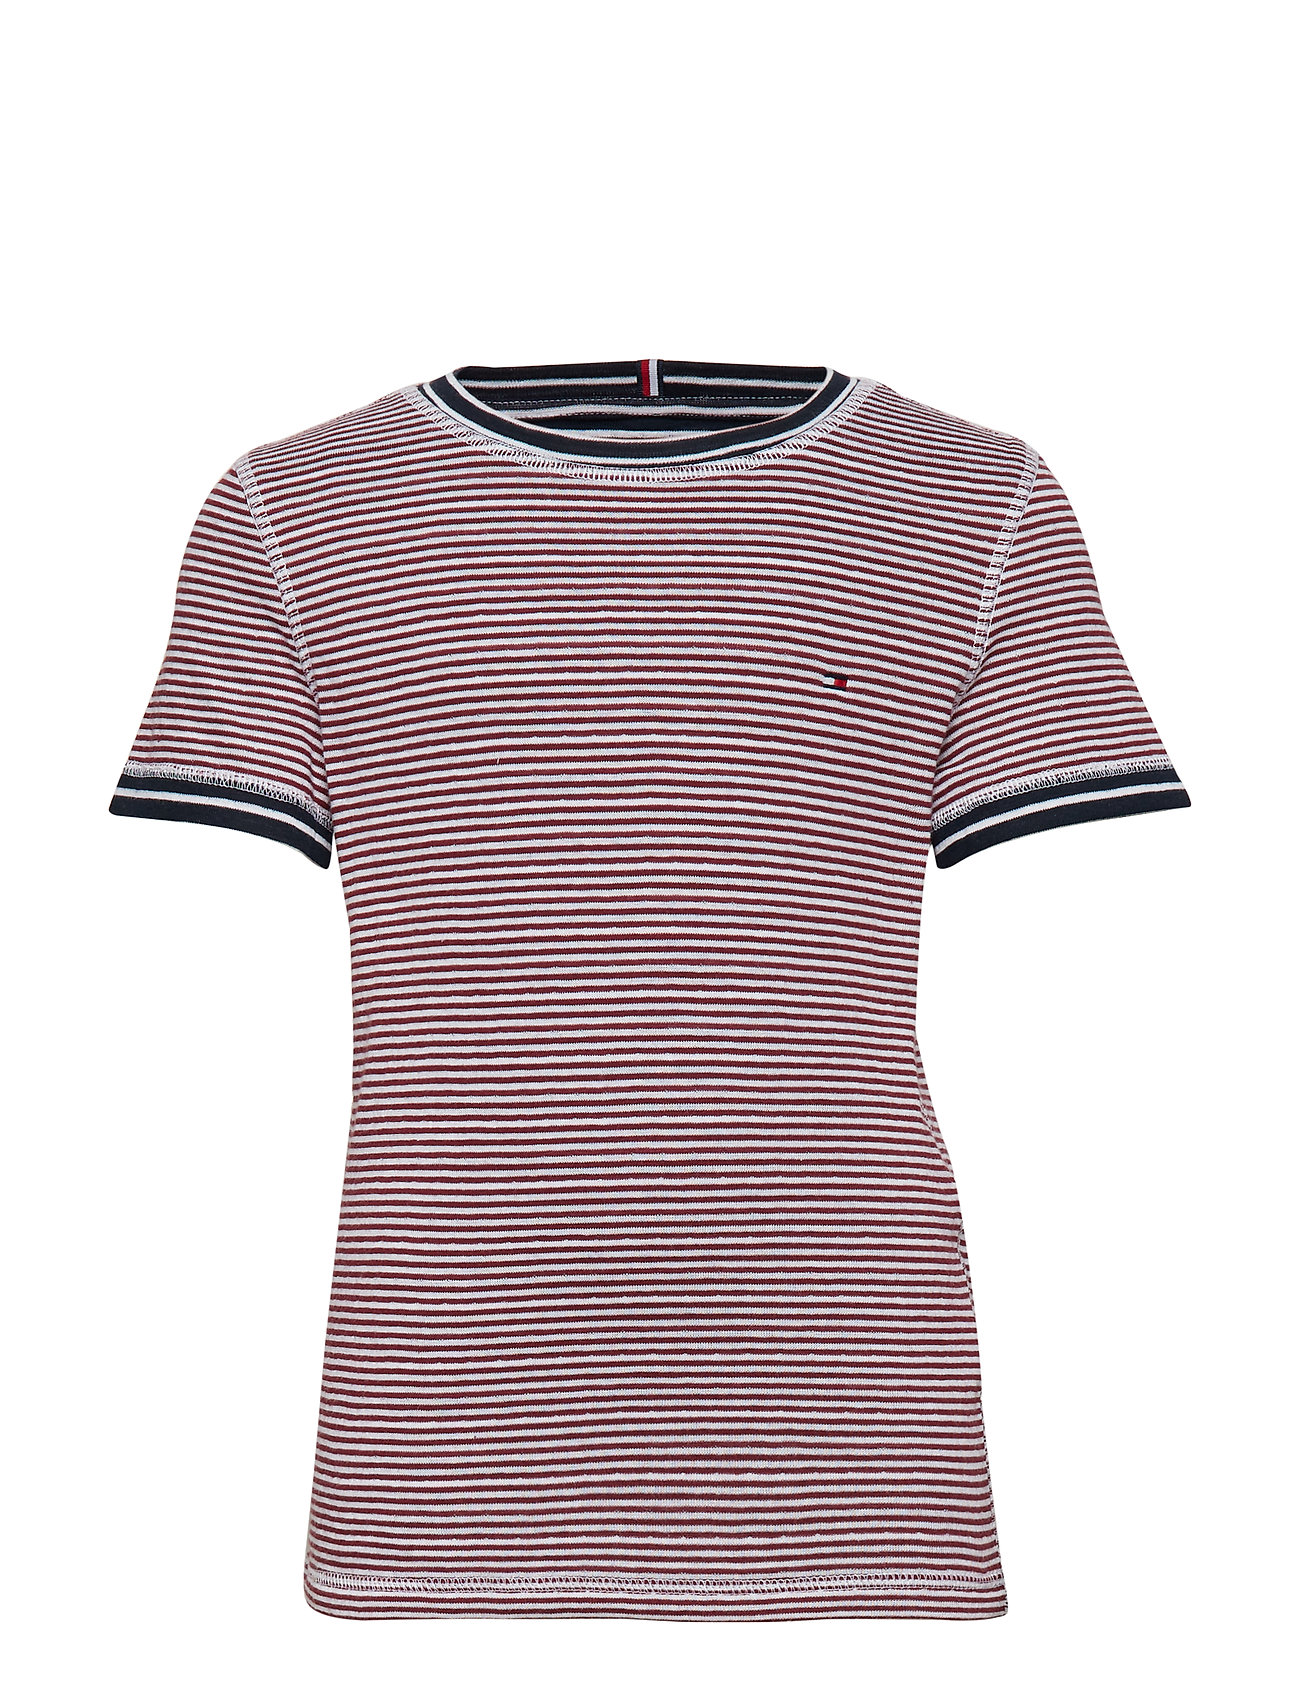 Tommy Hilfiger BONDED TEE S/S - BRIGHT WHITE/CORDOVAN